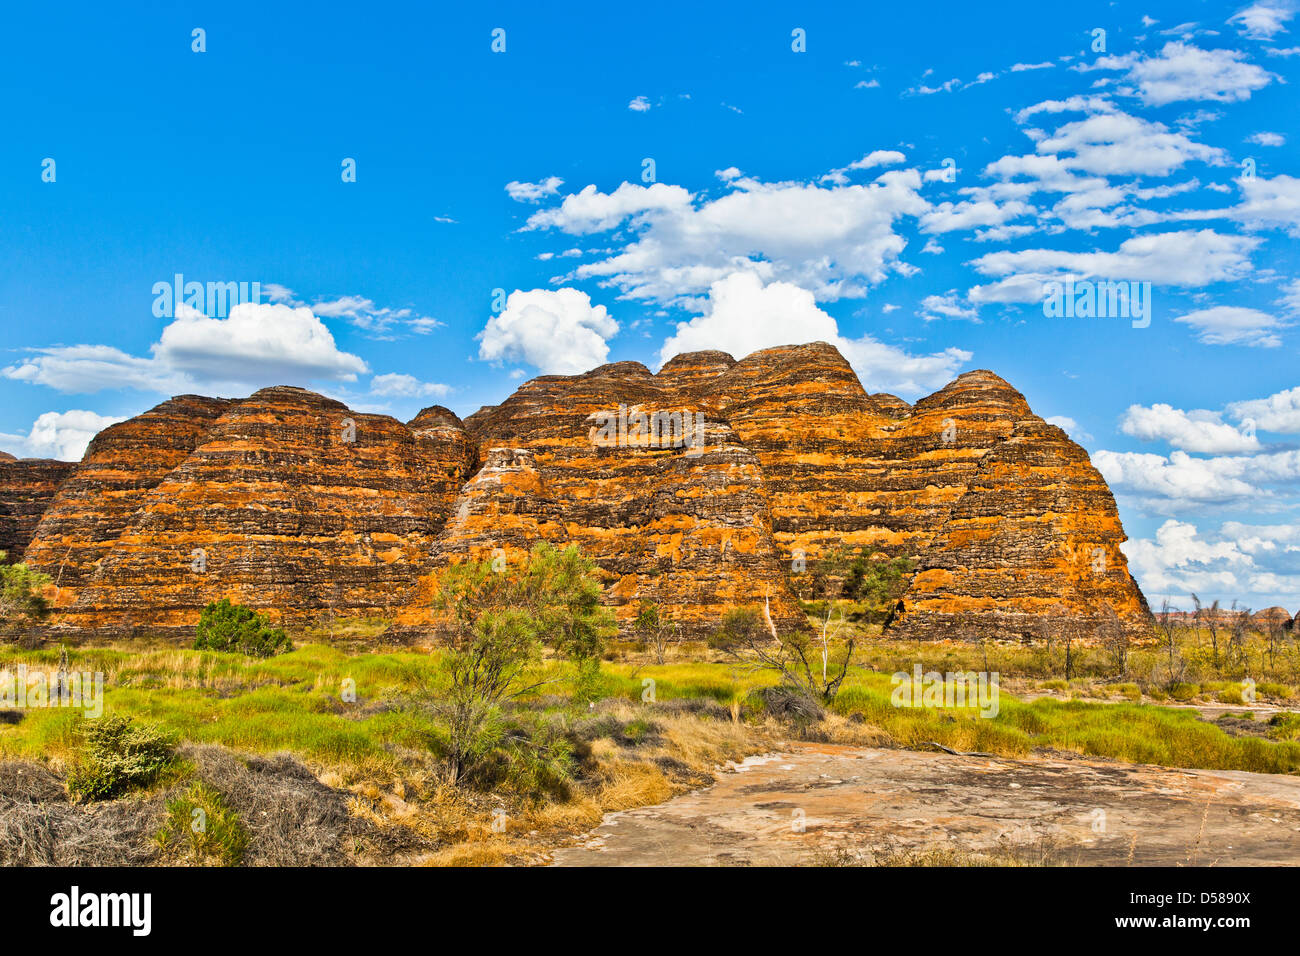 Bungle Bungle National Park, Purnululu, view of the characteristic beehive shaped sandstone domes, Western Australia - Stock Image